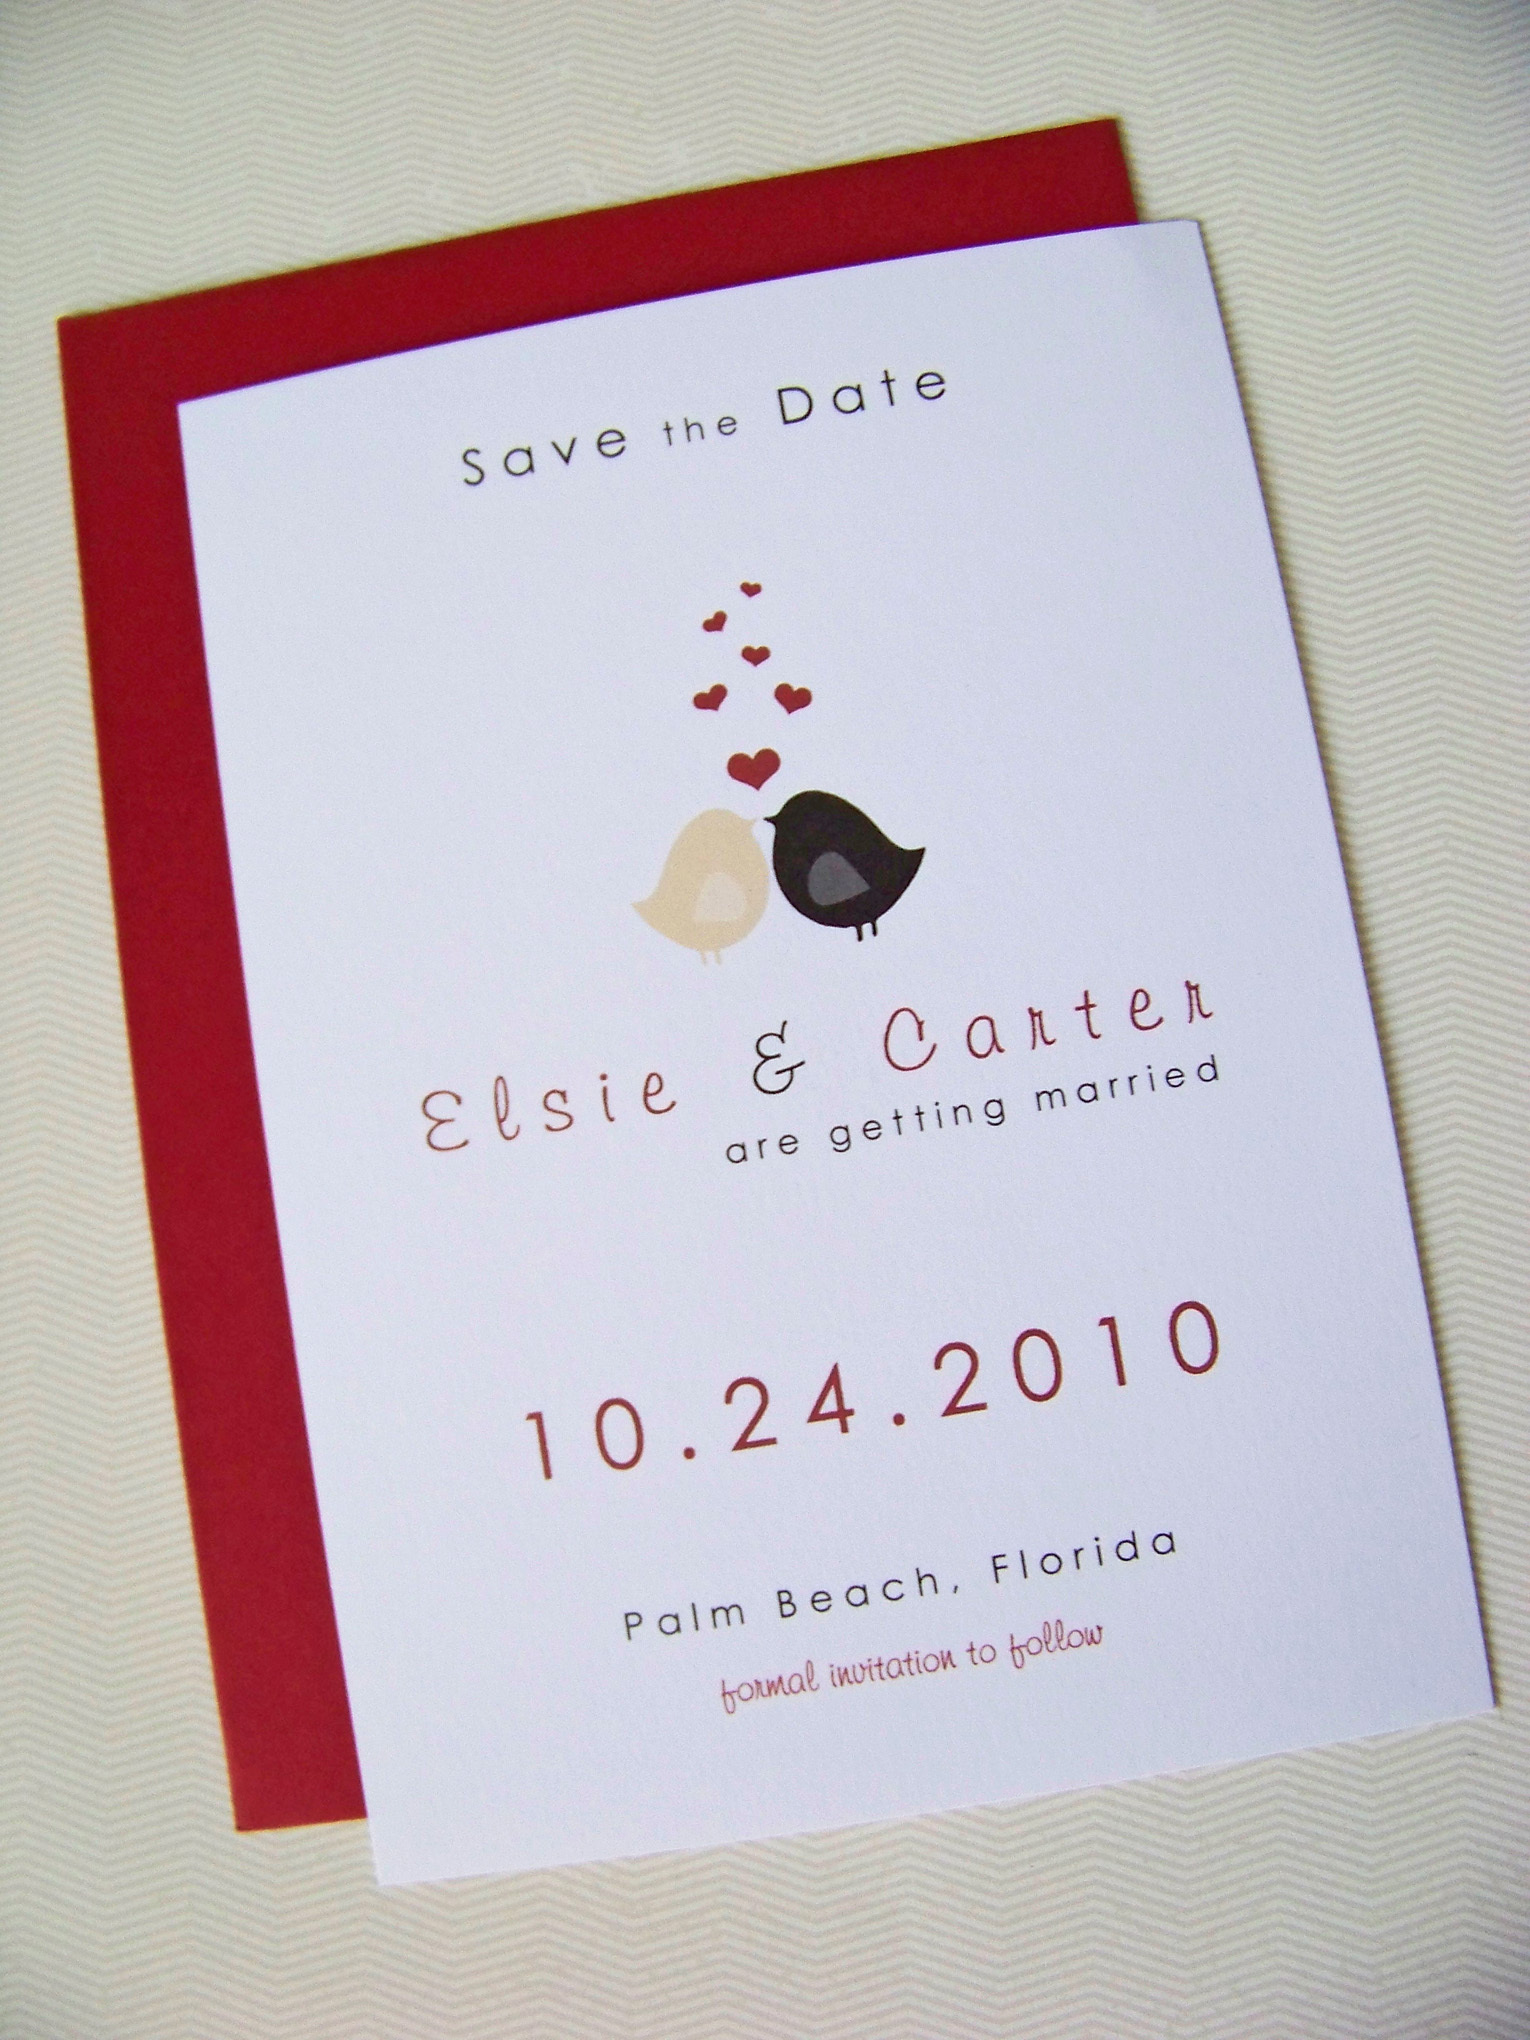 Favors & Gifts, Stationery, white, red, black, invitation, Favors, Modern Wedding Invitations, Invitations, Save-the-Dates, Cards, The, Pocketfold, Save, Date, Little spark creations